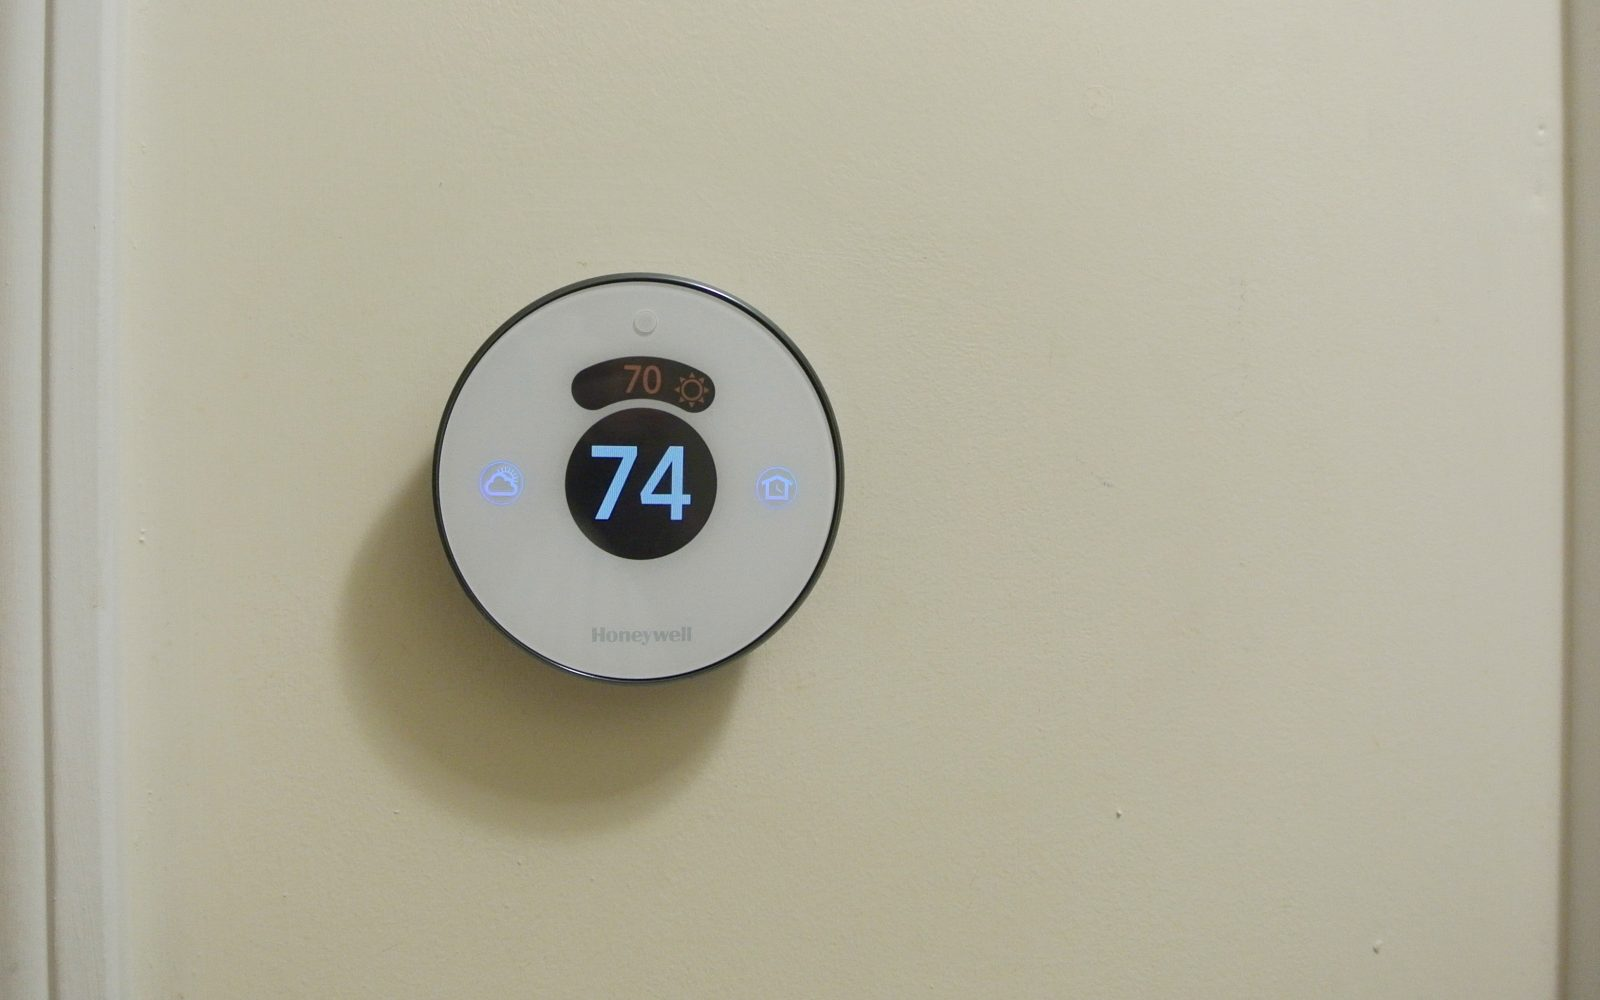 Review Honeywell Lyric Round Wi Fi Thermostat Matches Homekit Rch9310wf5003 Consumer Reports Smarts With Traditional Style